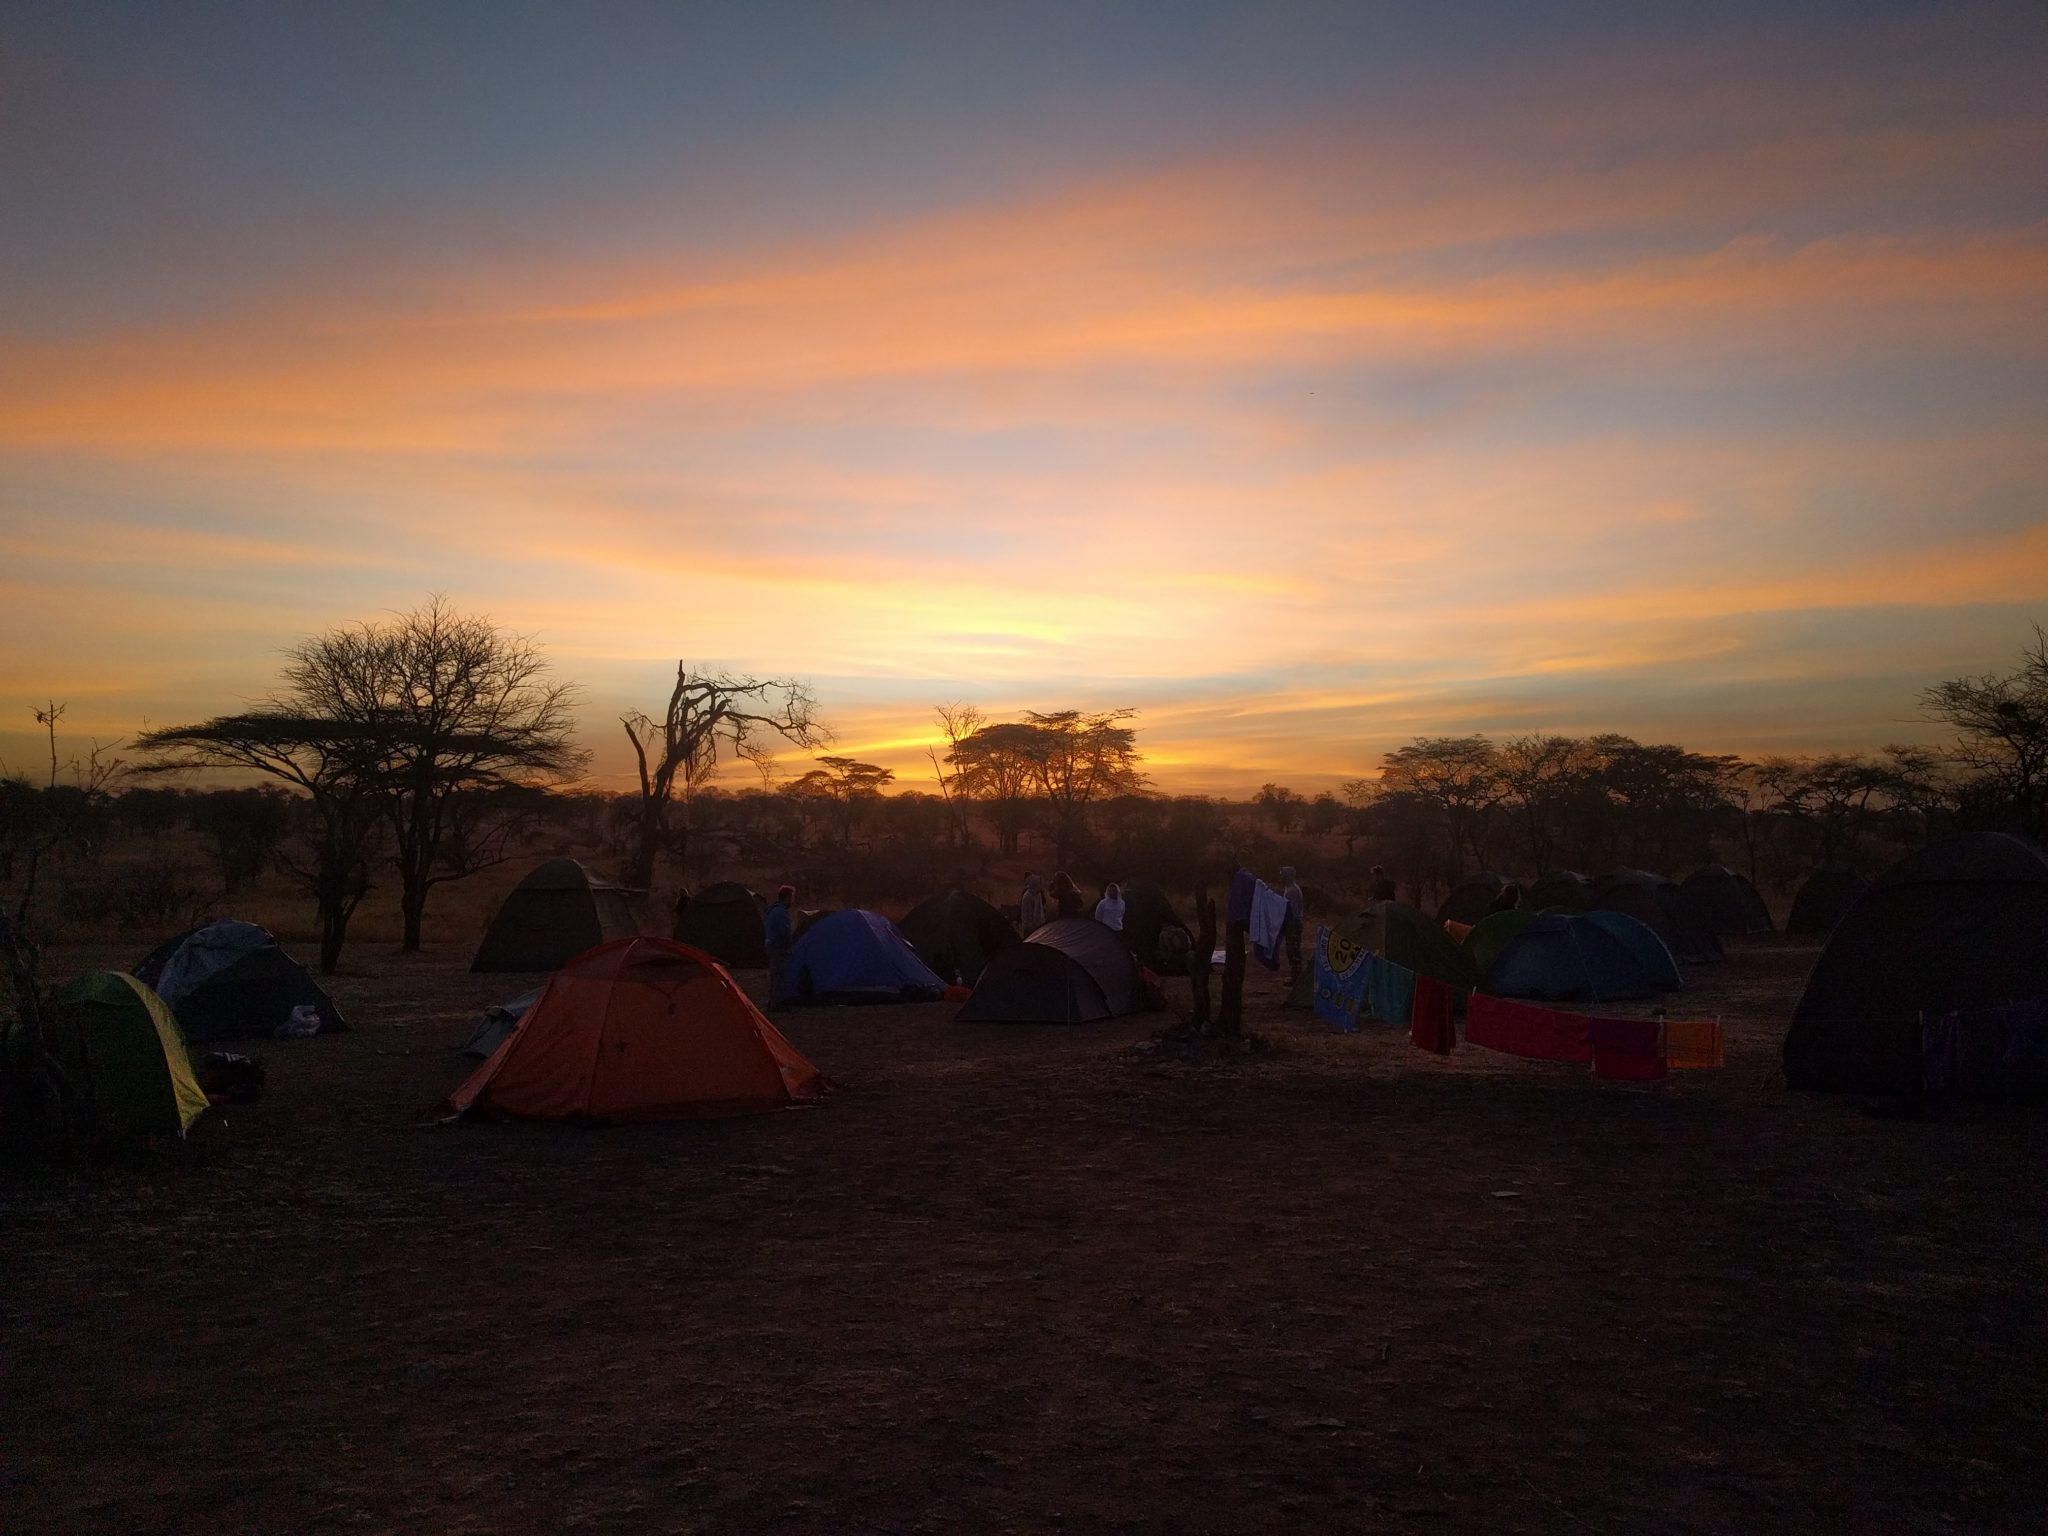 Nguchiro Camp Site